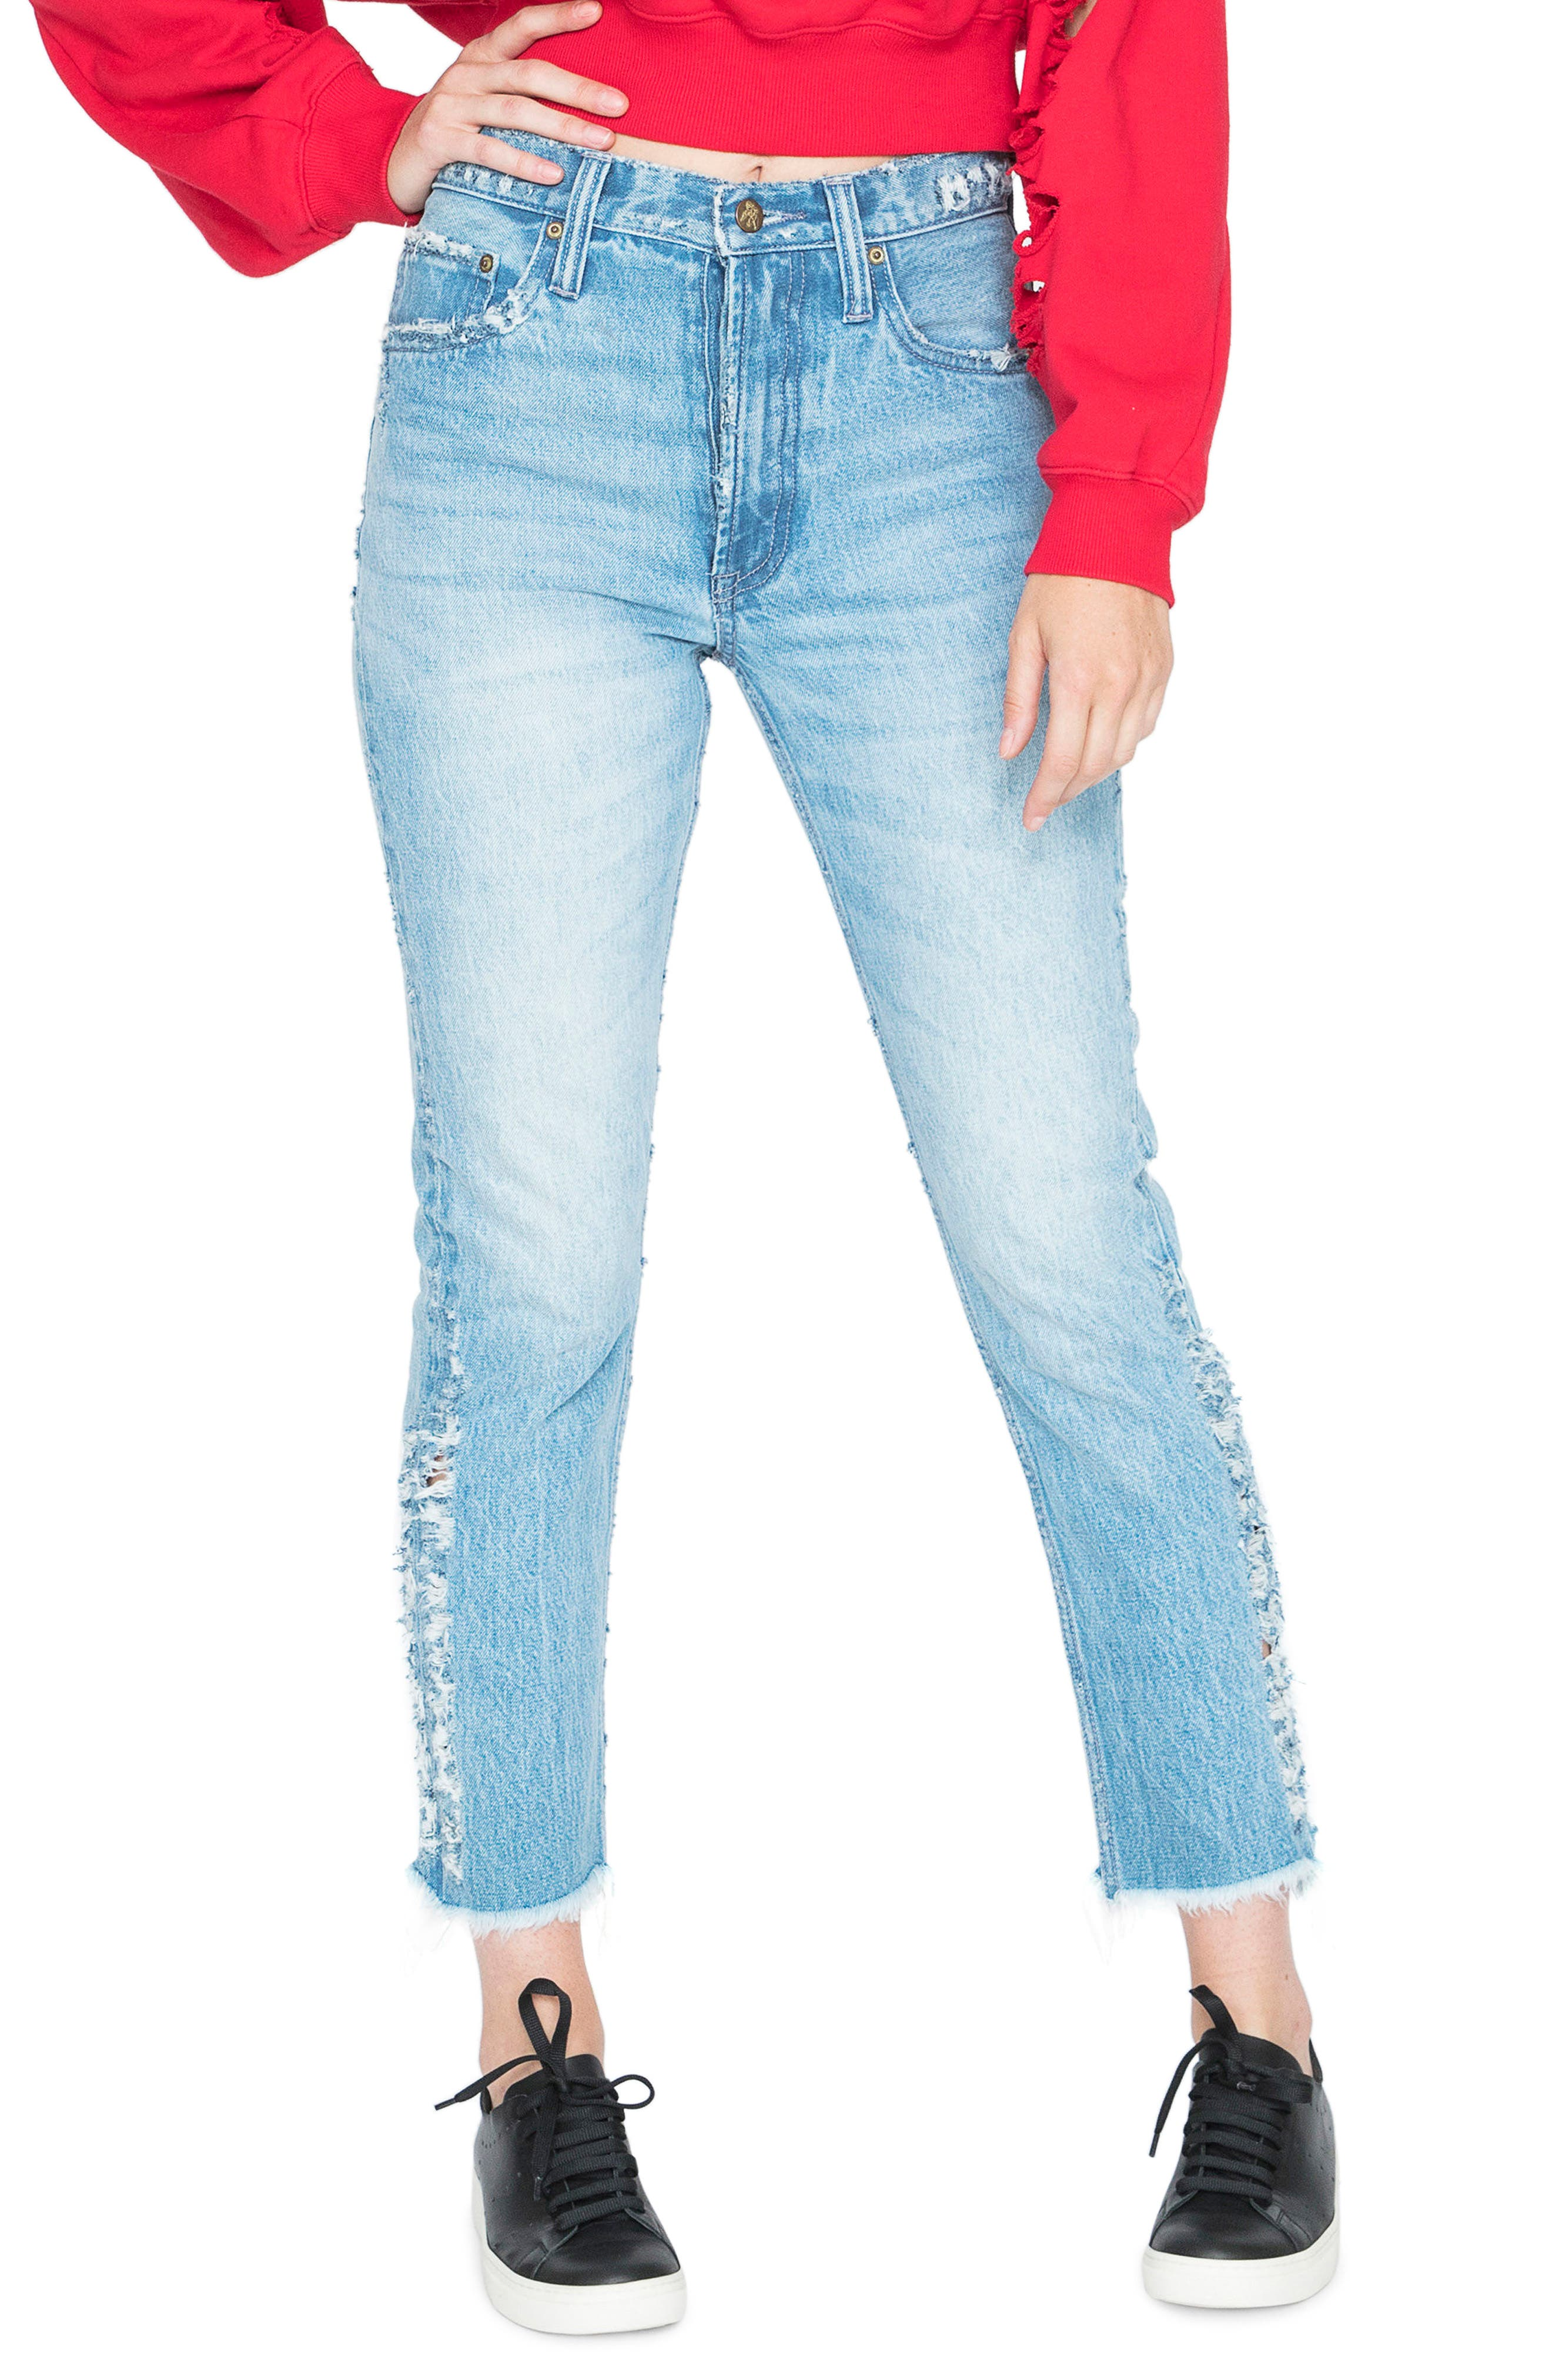 AMX Side Fray High Waist Ankle Jeans,                             Main thumbnail 1, color,                             Light Stone